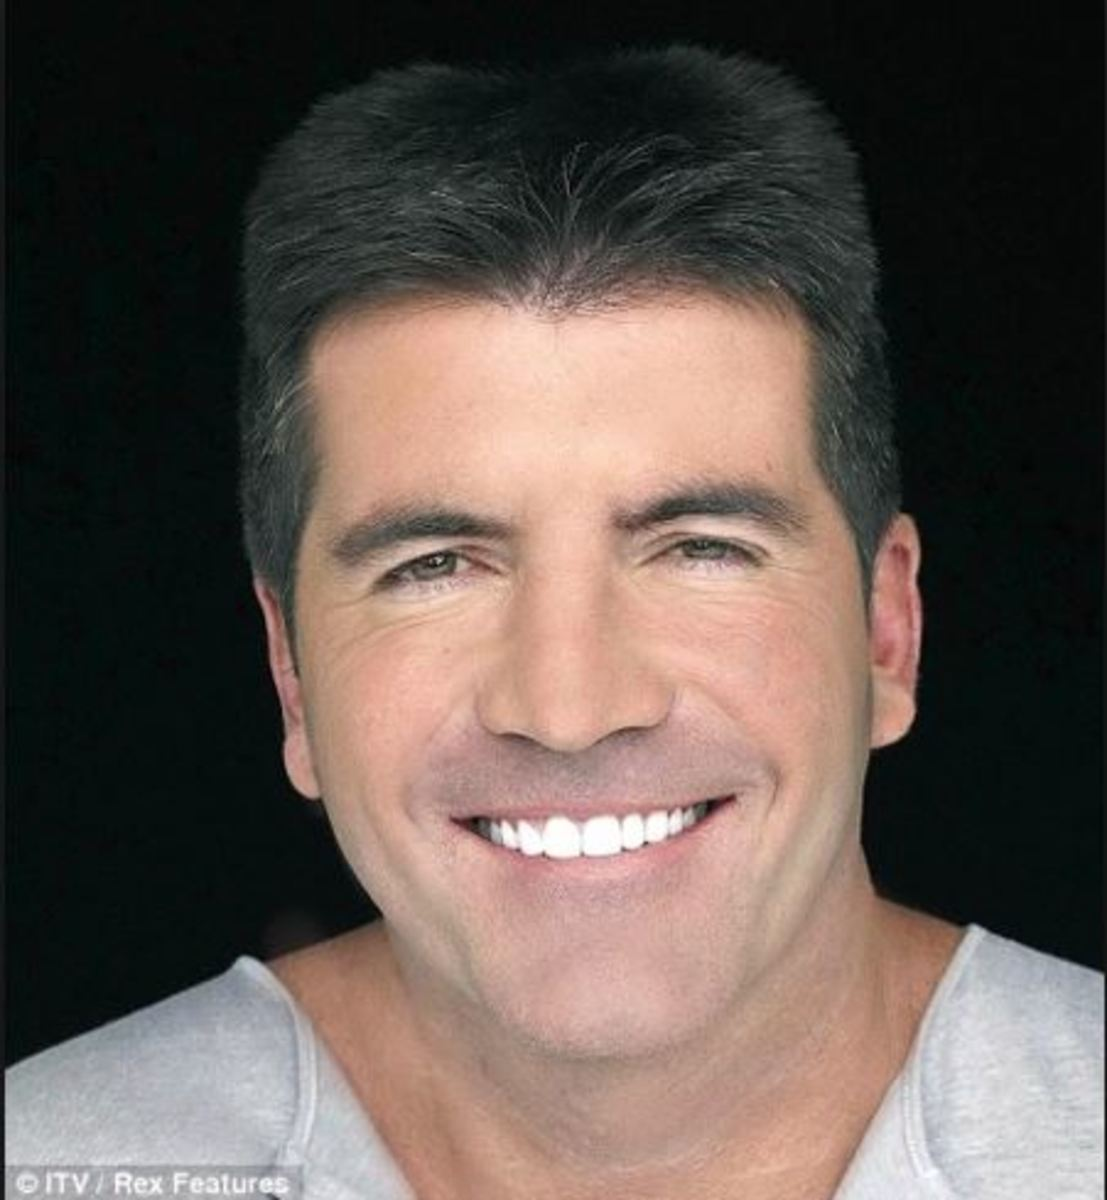 Simon Cowell, who smokes, is said to have spent thousands on getting his own smile just right